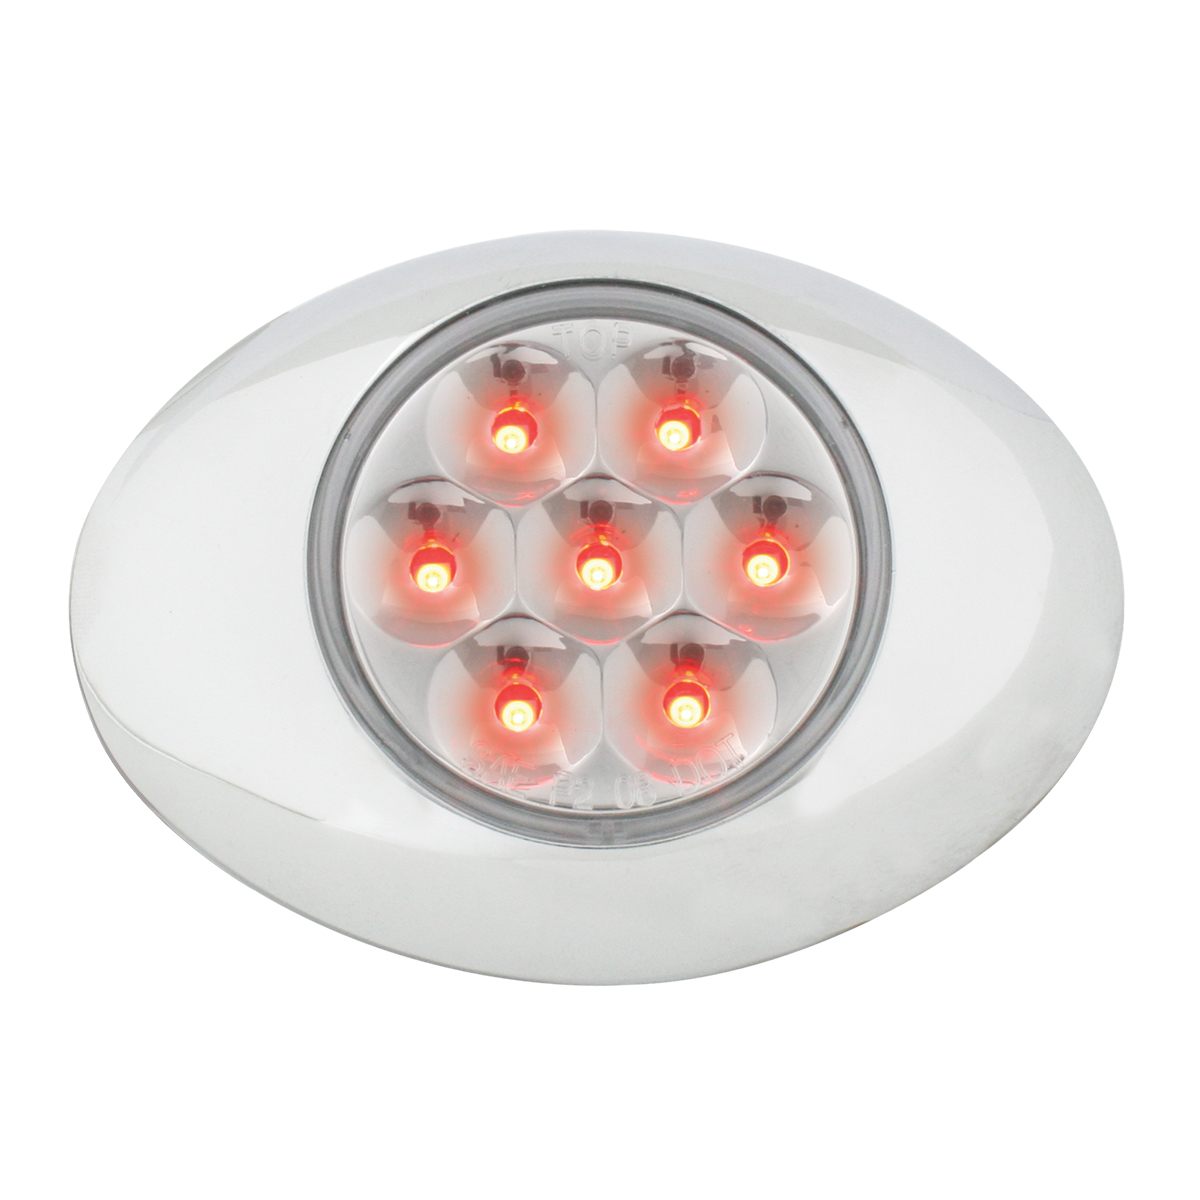 76238 Small Low Profile Surface Mount Pearl LED Marker & Turn Light w/ Chrome Bezel